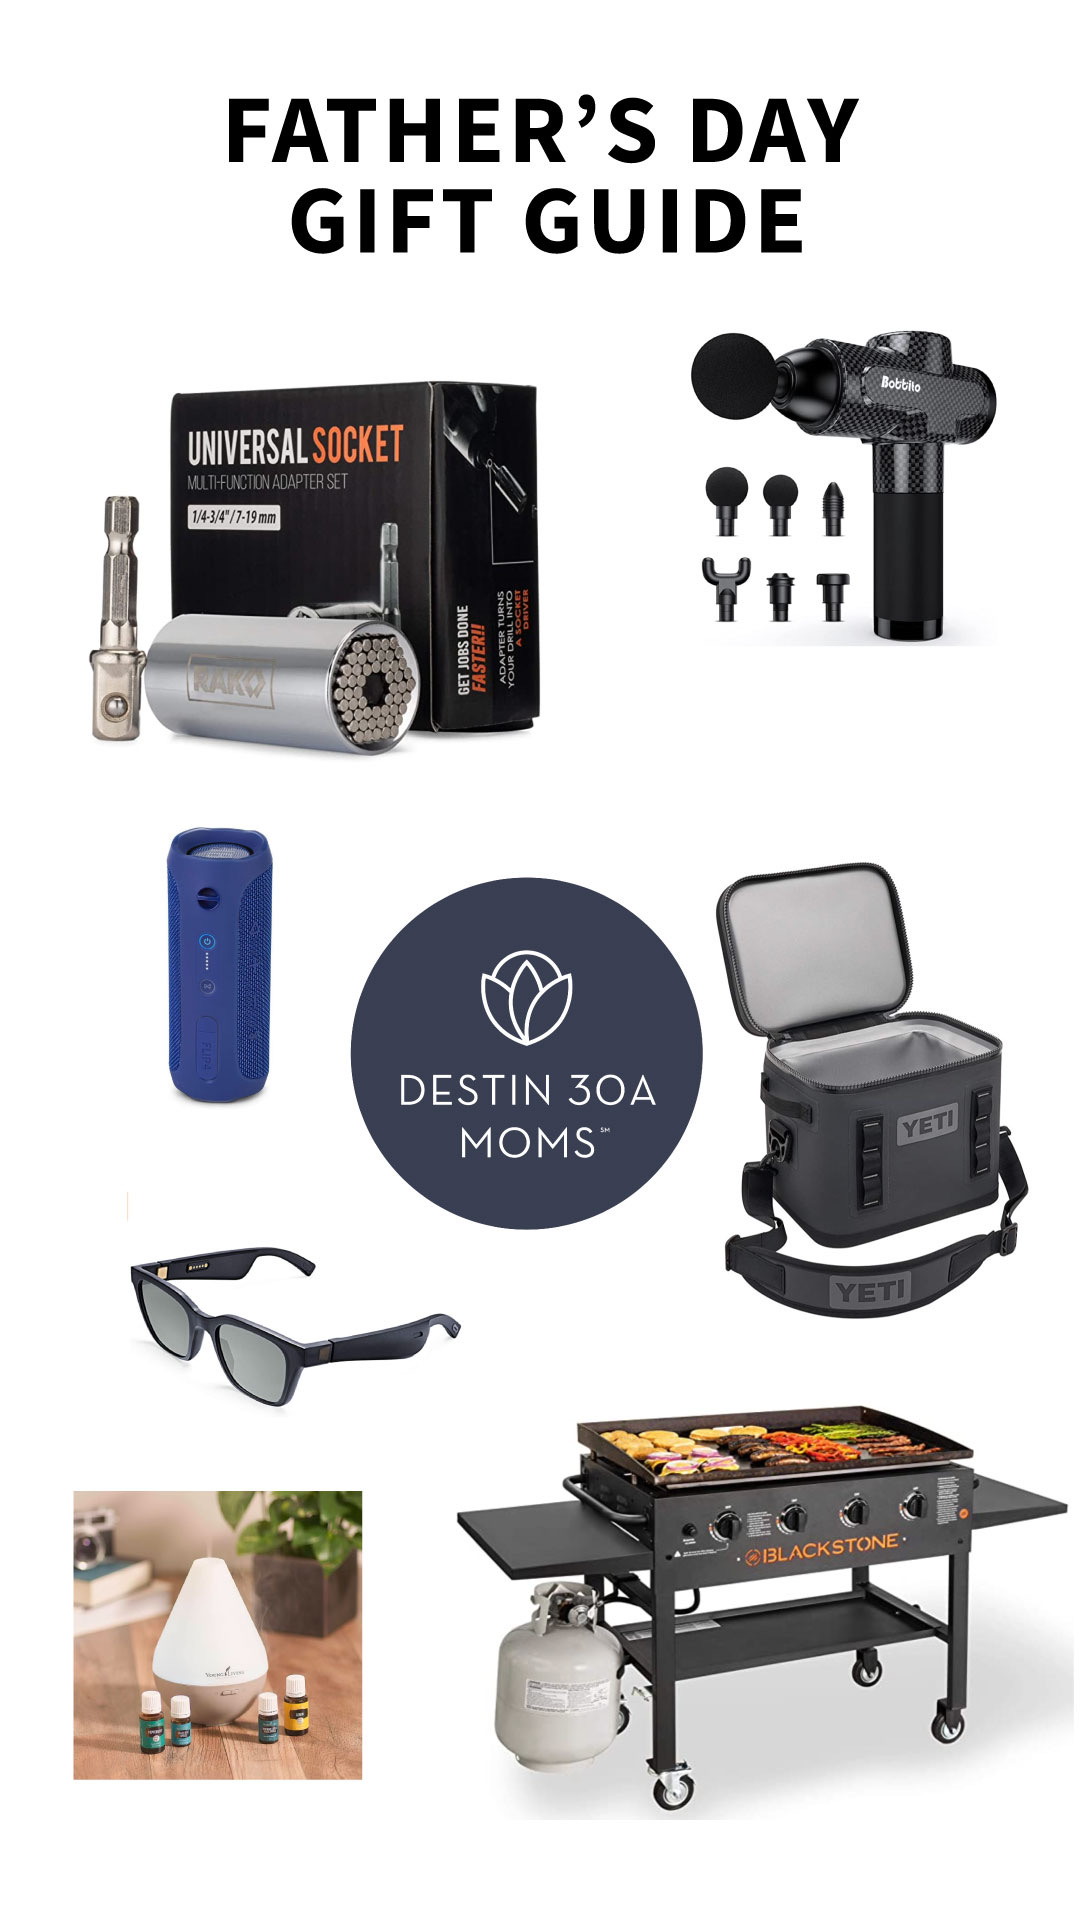 father's day gift guide destin 30a